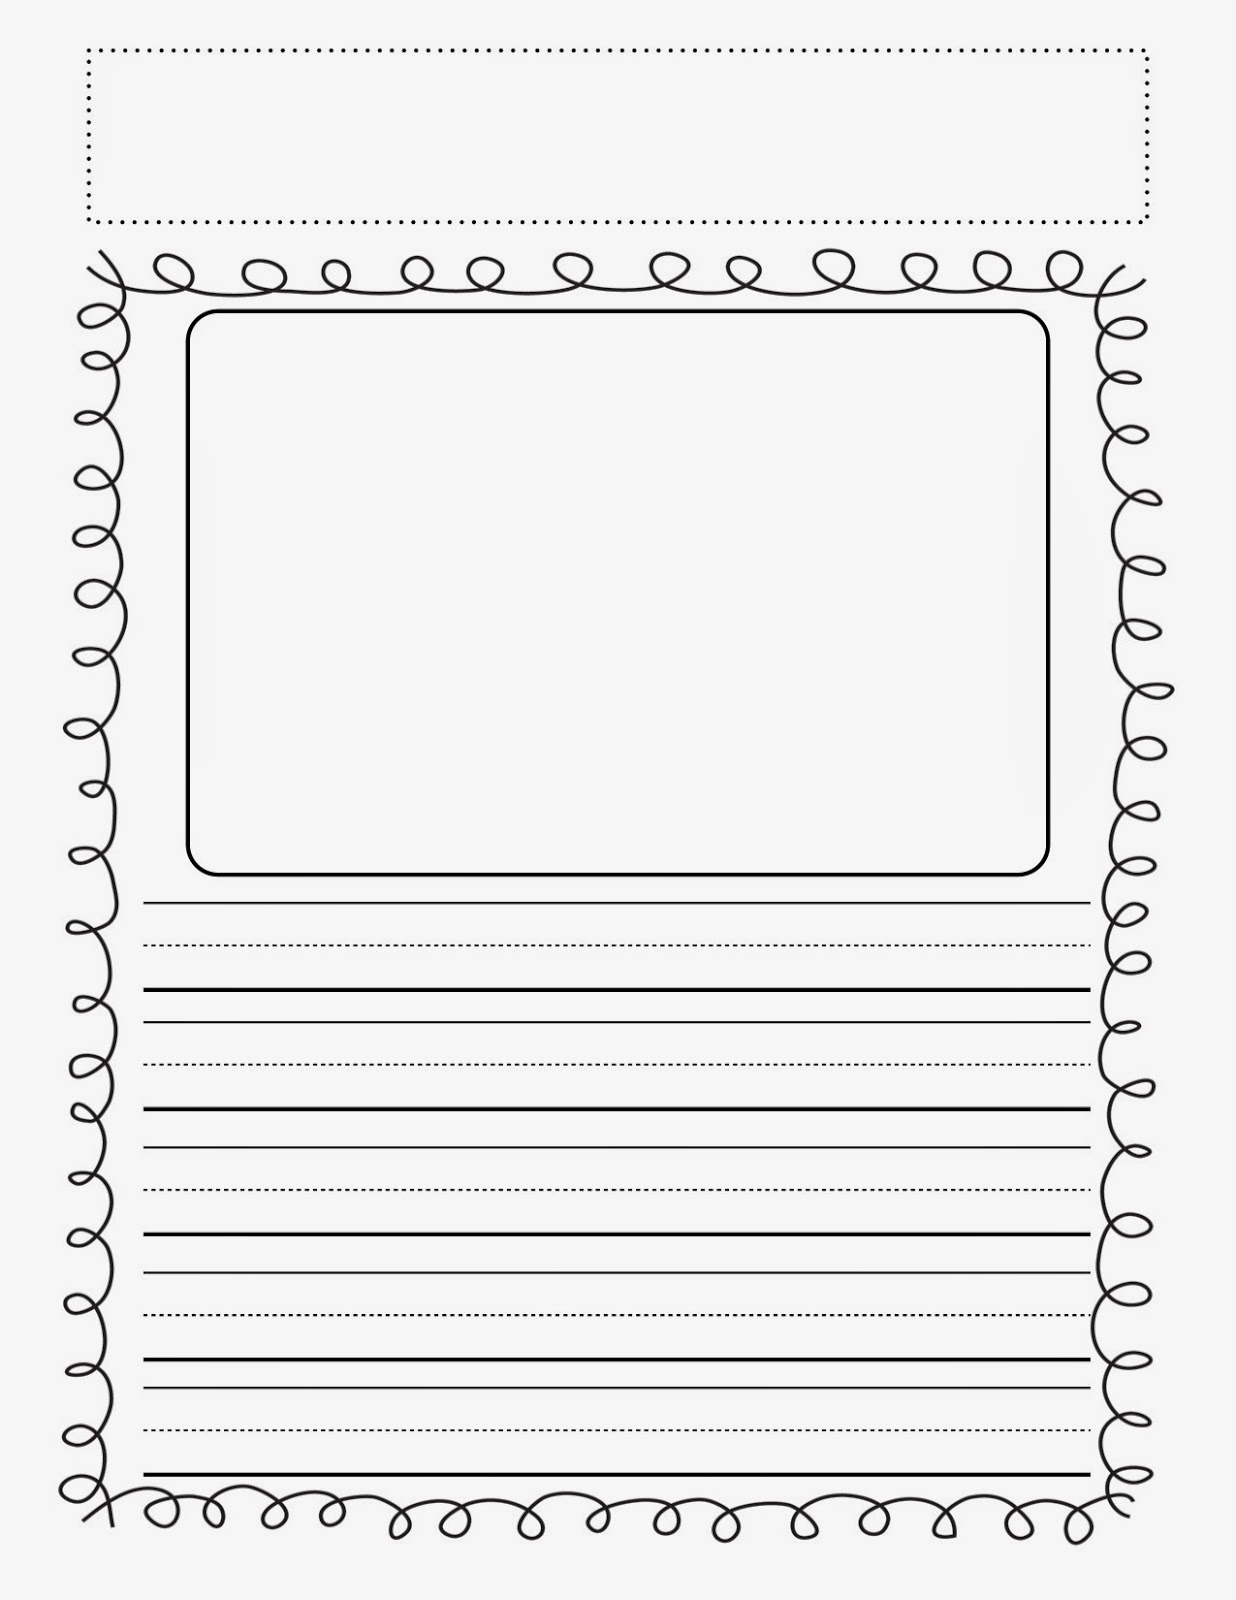 printable story writing paper kindergarten Printable lined writing paper pdf printable lined paper that is generally in black and white printable lined writing paper for kindergarten whether your child is writing a story with its own special picture.